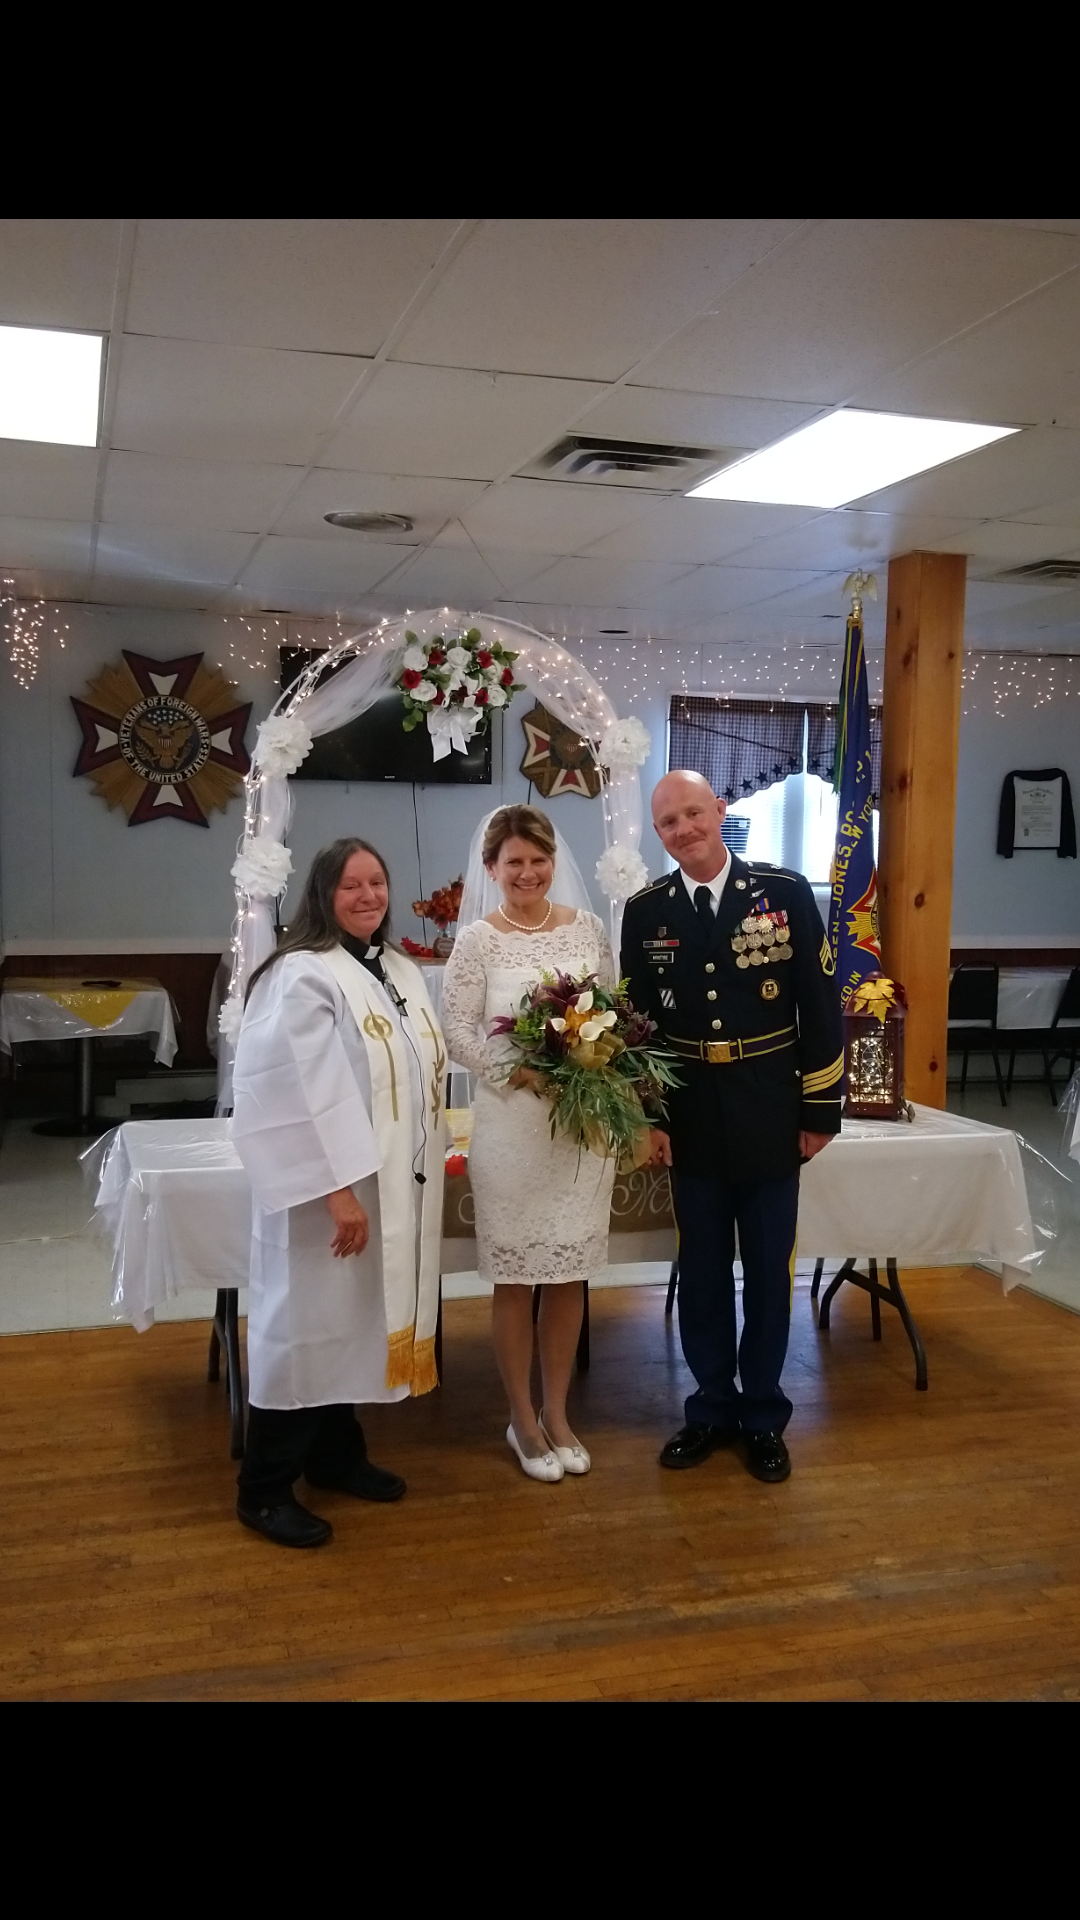 The marriage of Amylynn and David